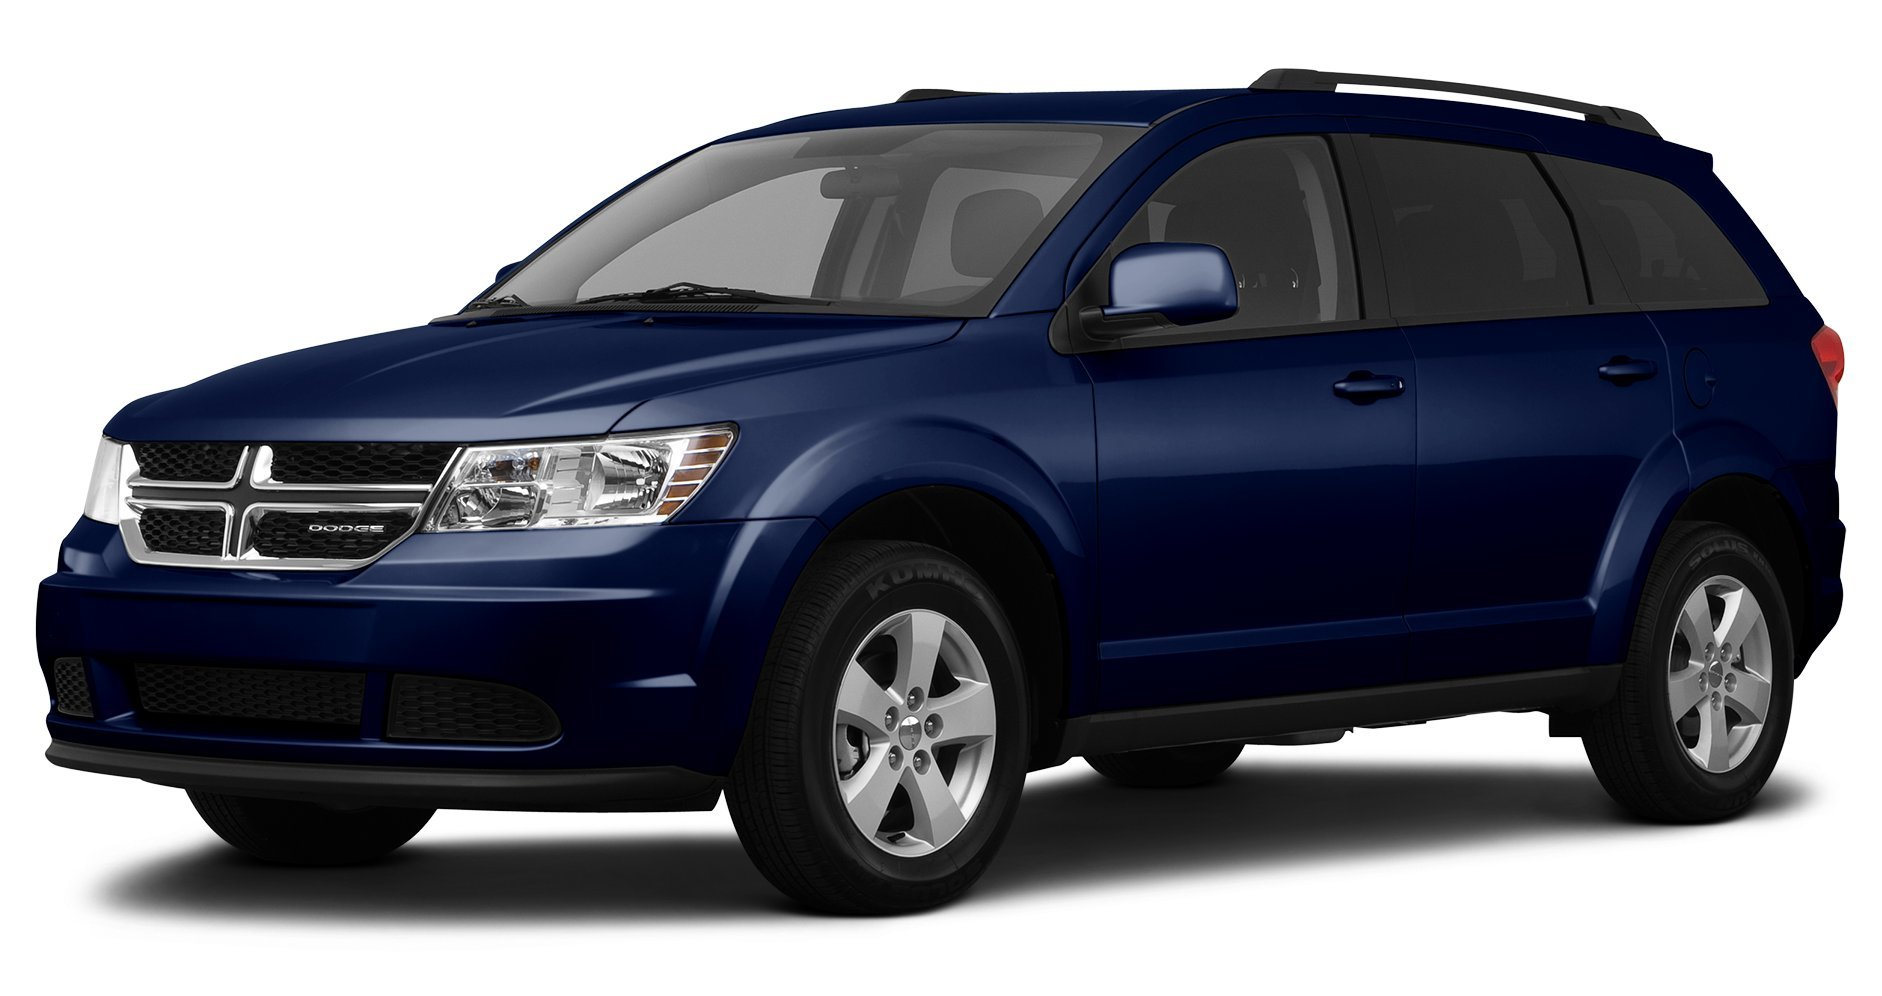 2011 Nissan Maxima Reviews Images And Specs Vehicles Fuel Filter Dodge Journey Lux Front Wheel Drive 4 Door